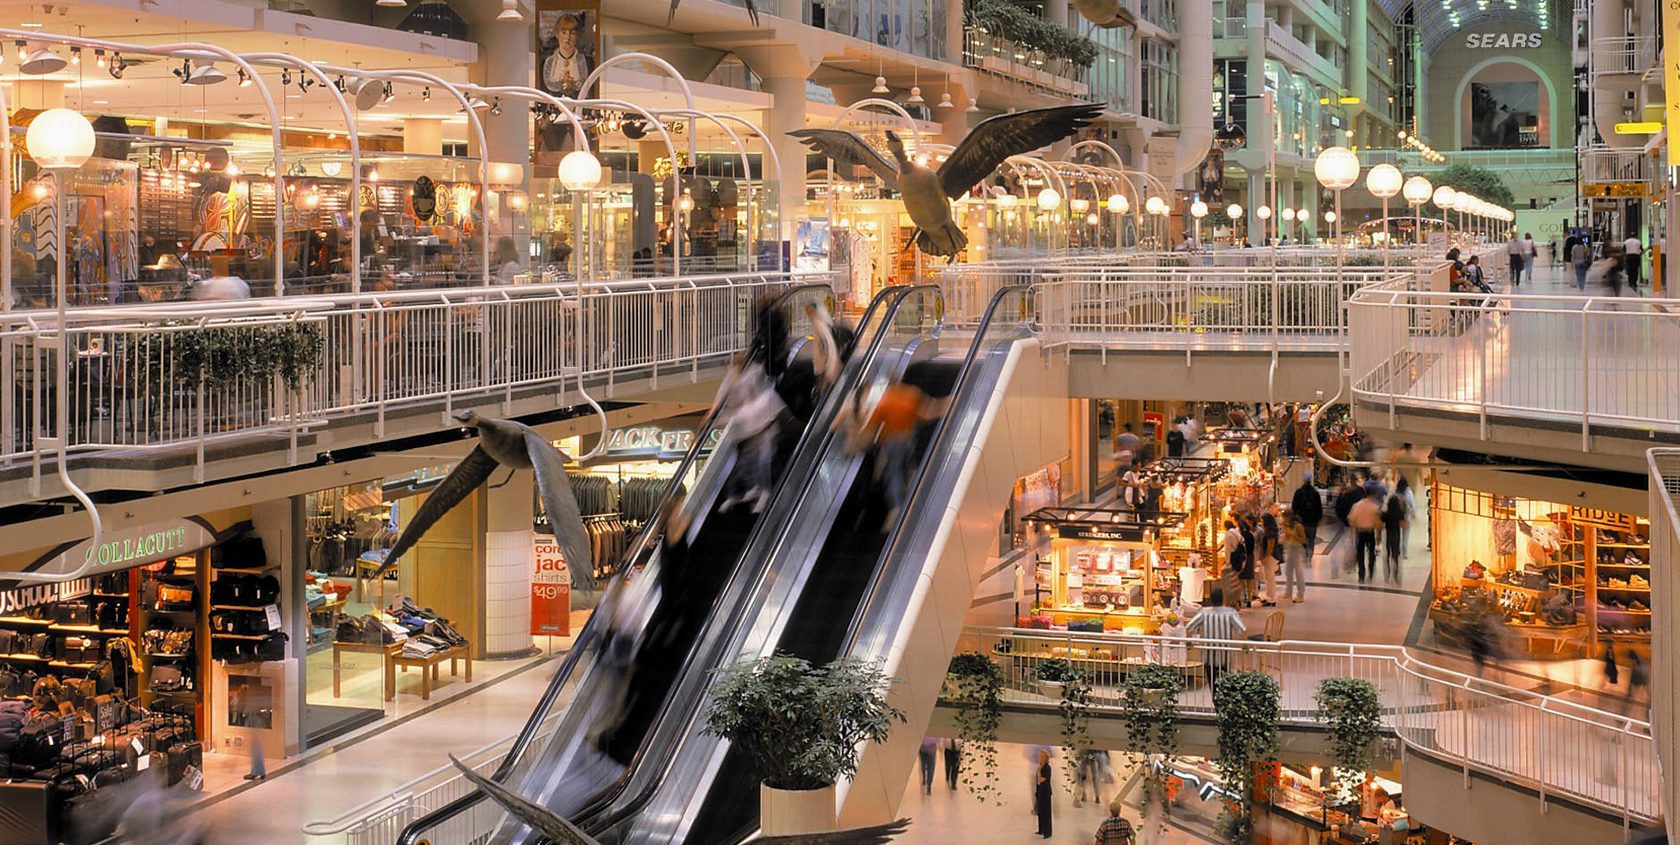 The following is a list of shopping malls in Toronto, Ontario, Canada. The first enclosed shopping mall in Toronto was the Toronto Arcade in the downtown core. The first shopping mall of the enclosed, automobile-centred design type was Yorkdale Shopping Centre, opened in